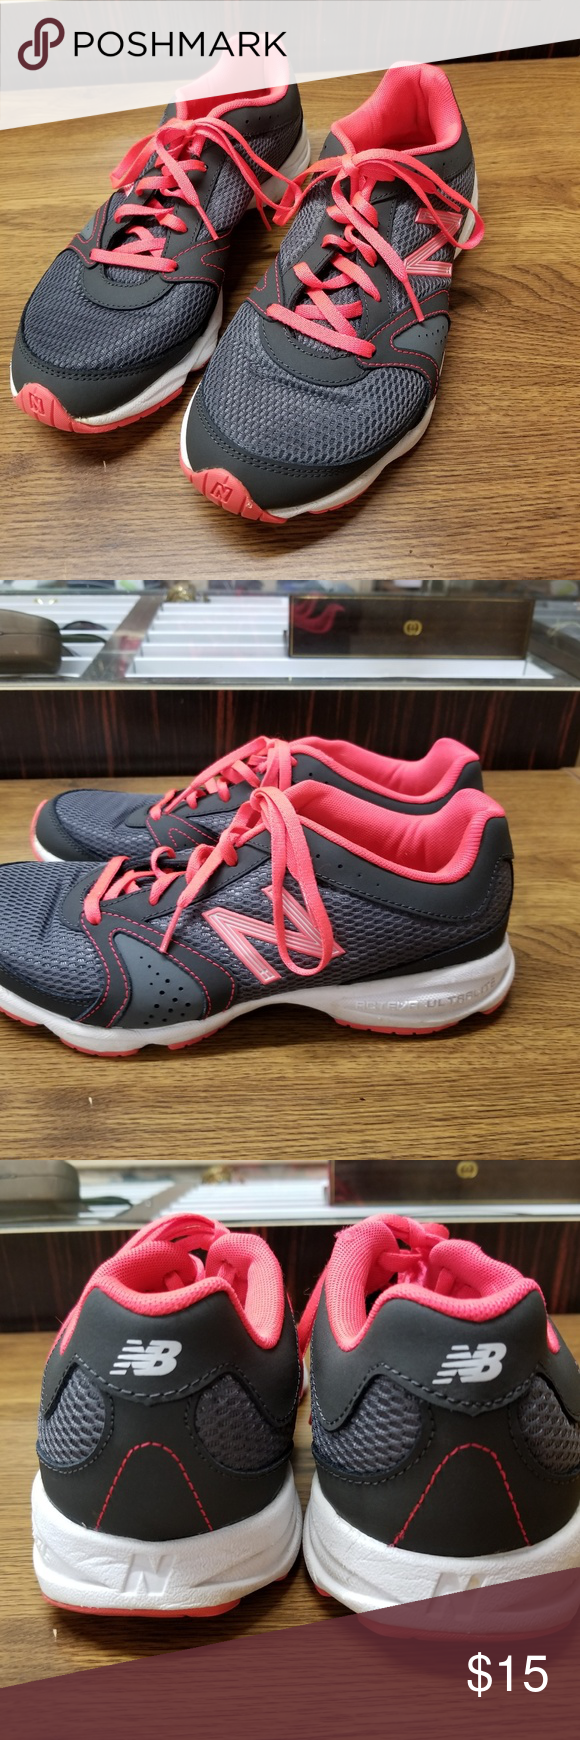 buy popular c6abb 3485e LADIES NEW BALANCE 550 V2 RUNNING SHOES SZ 9 THESE ARE THE ...